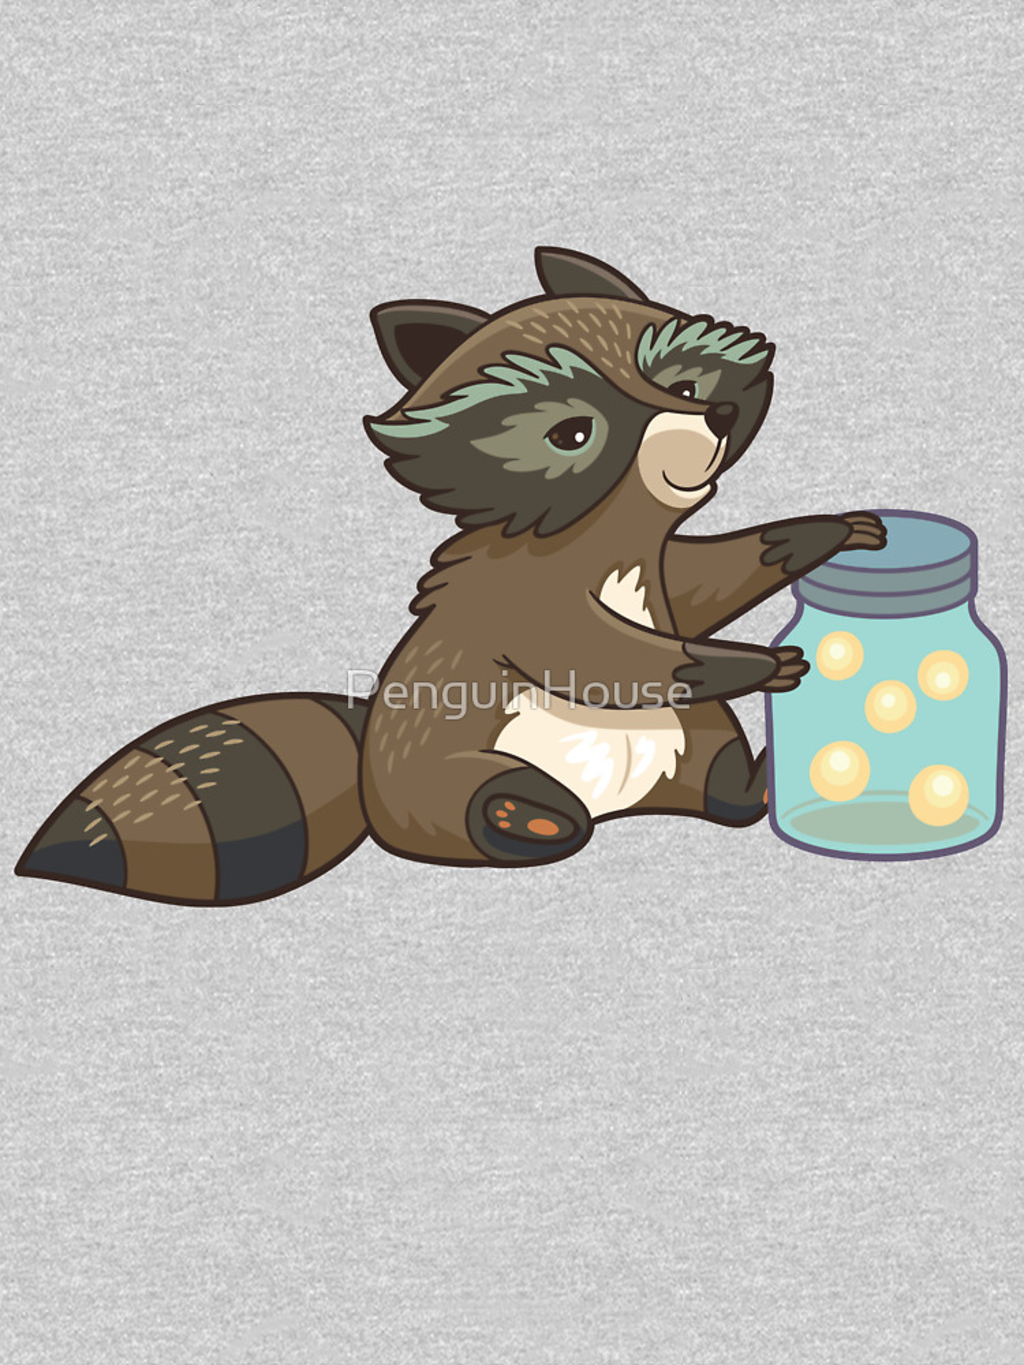 RedBubble: Funny little raccoon collects crickets